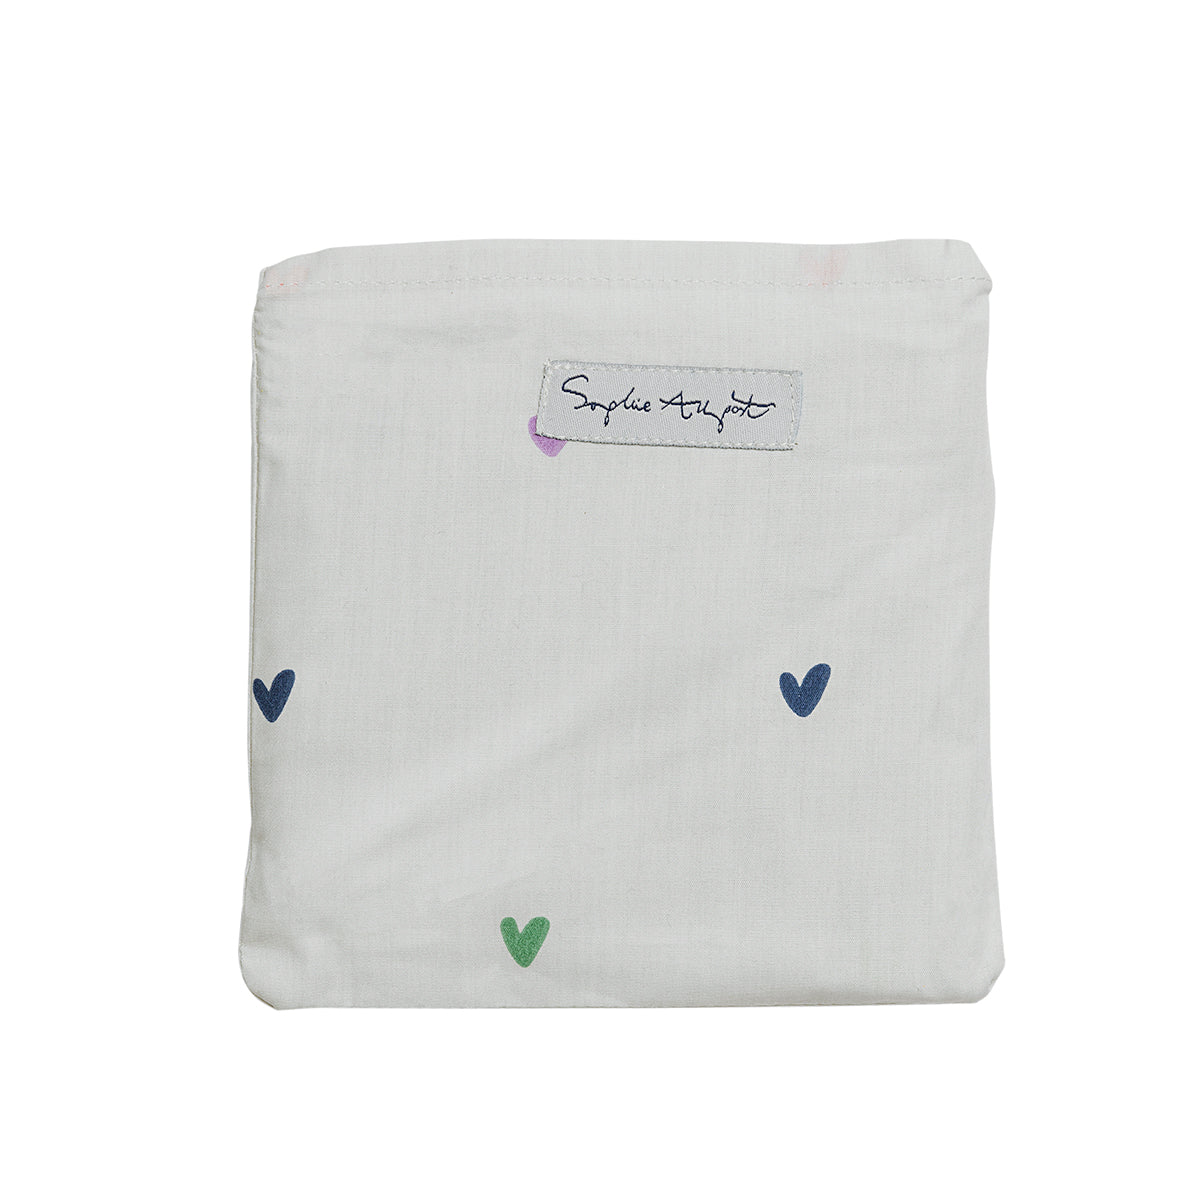 Multicoloured Hearts Folding Shopping Bags by Sophie Allport